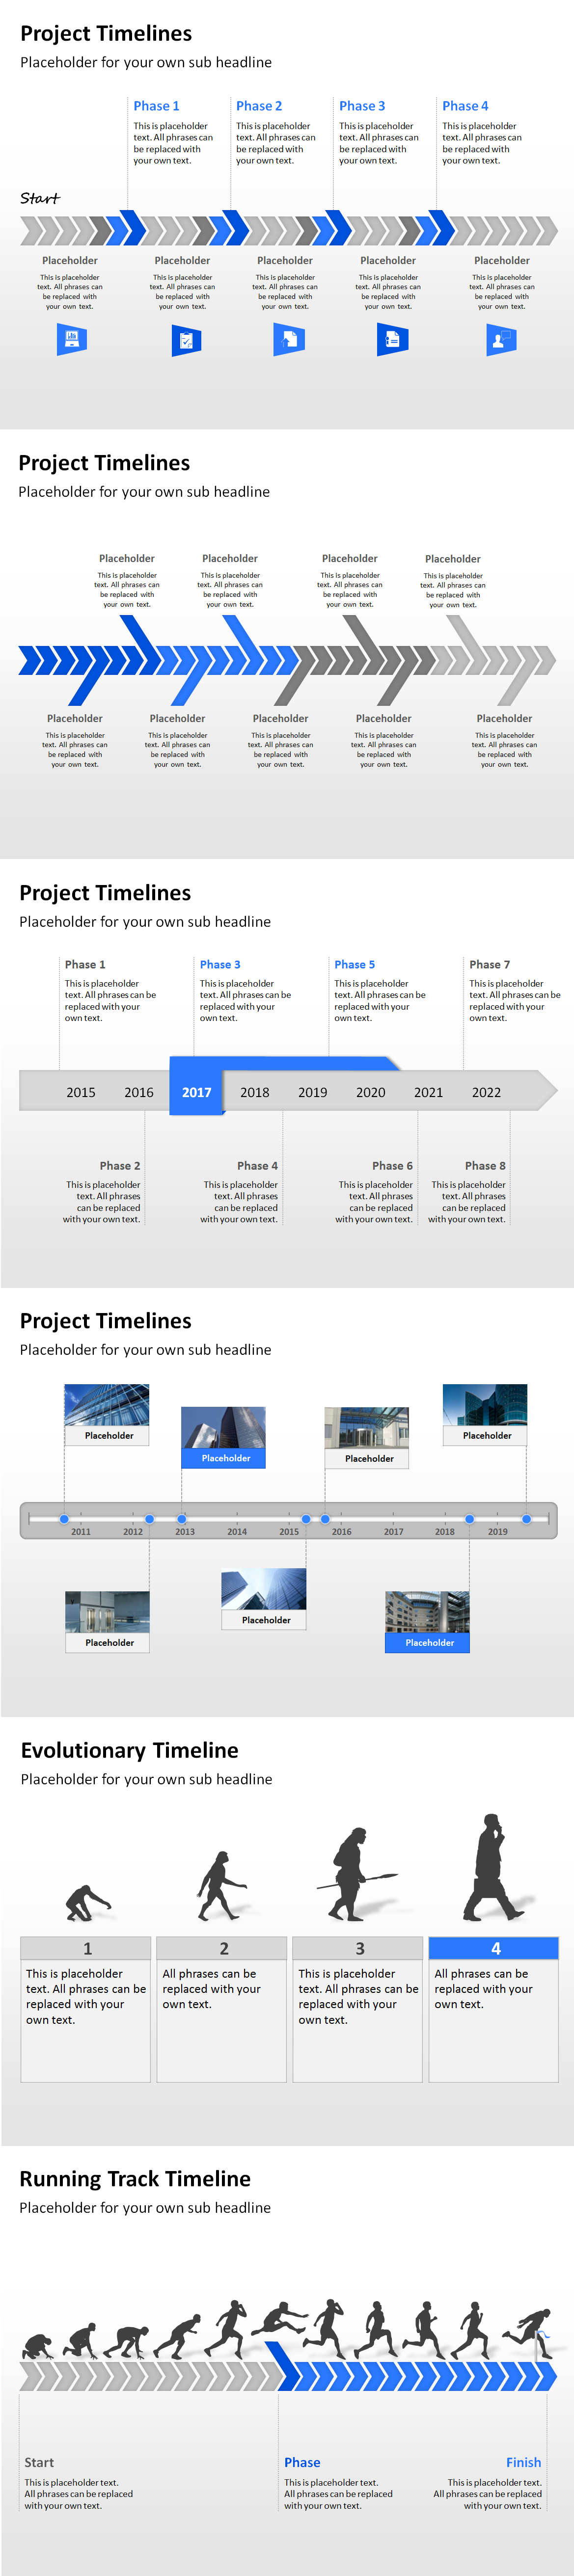 Project timeline templates to display planning, operation and ...